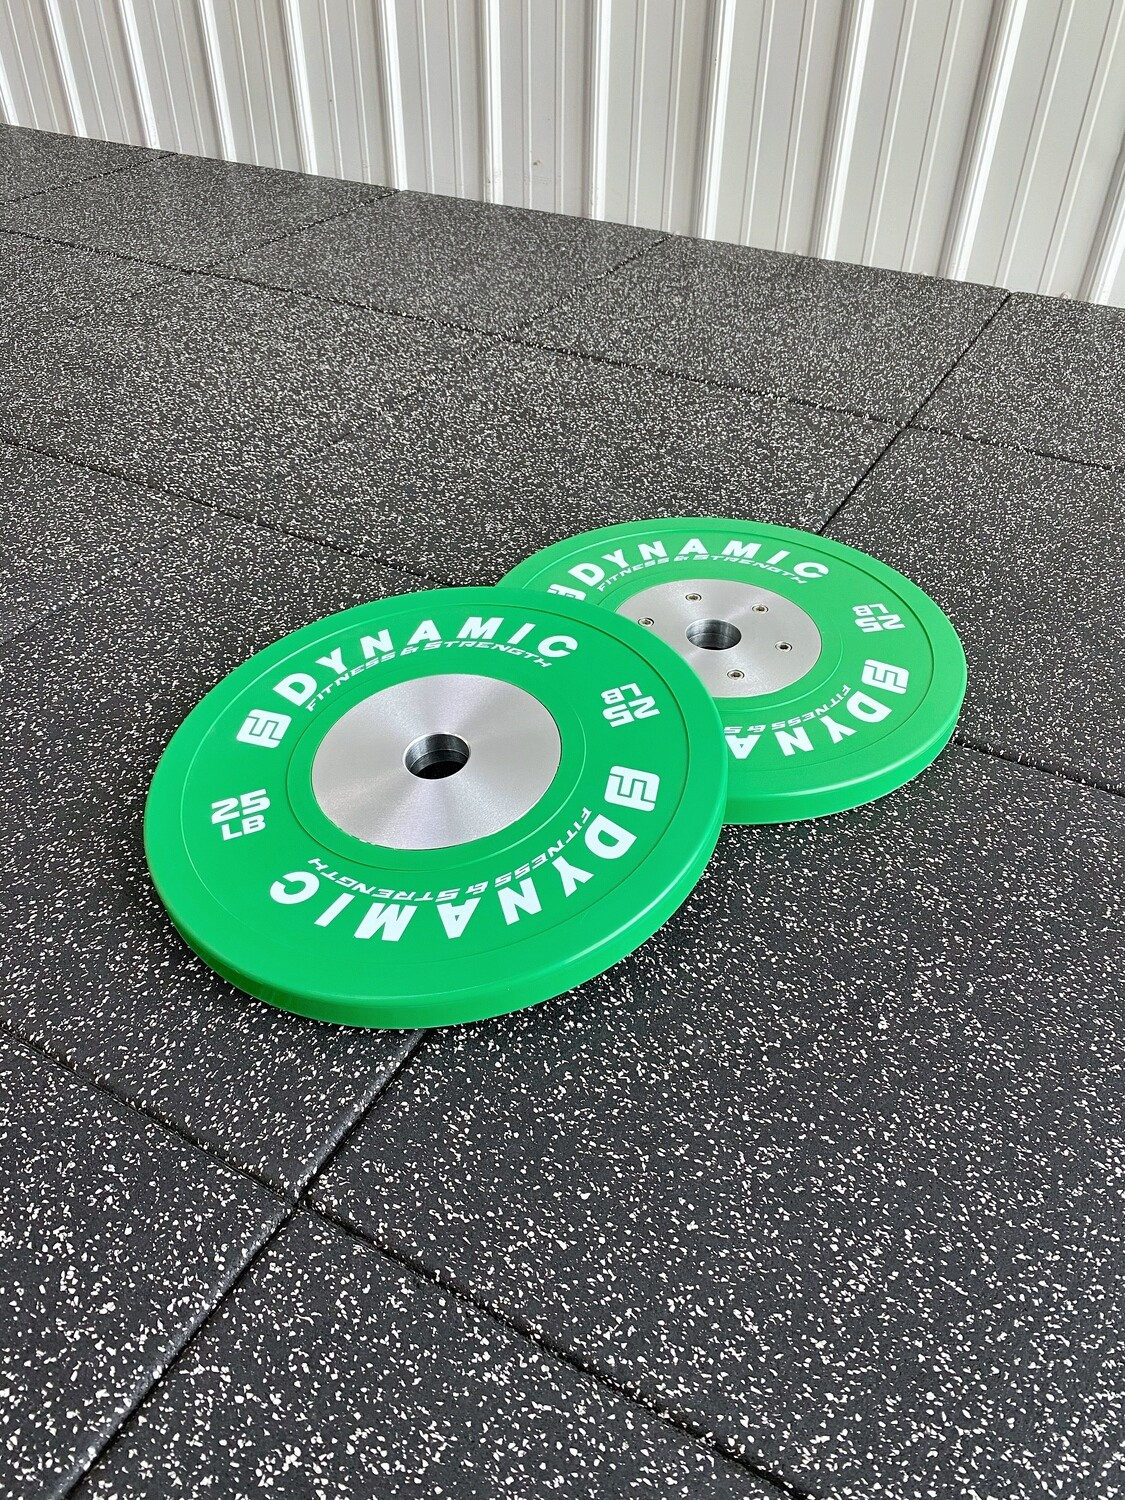 25LB Green Competition Bumper Plates (Pair)